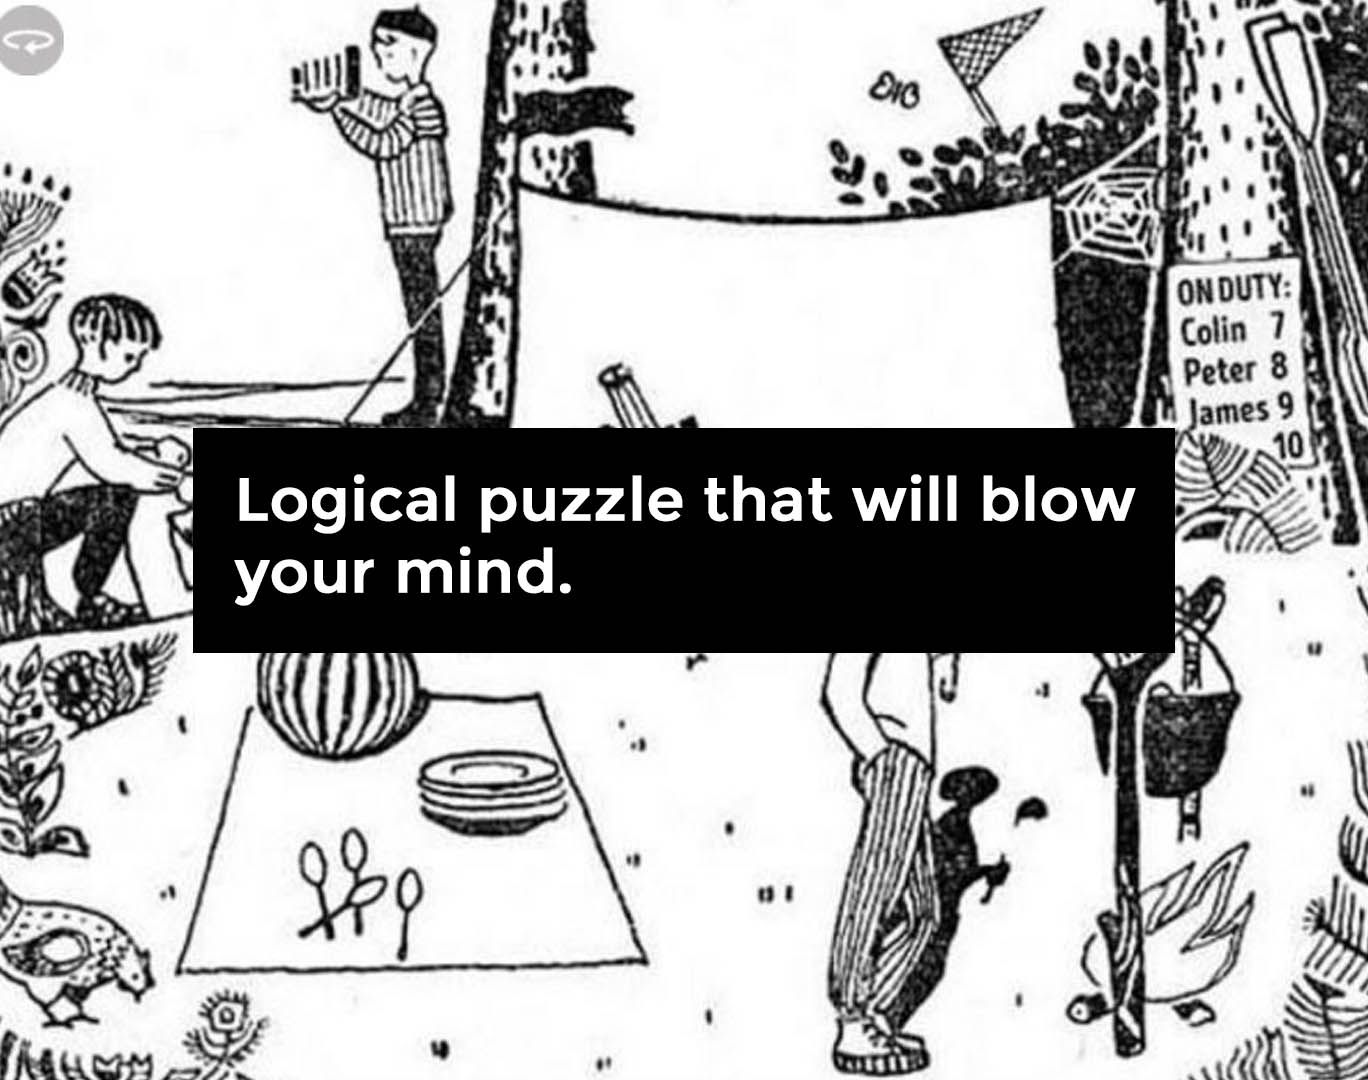 12 Brain Teasers That Will Drive You Completely Crazy